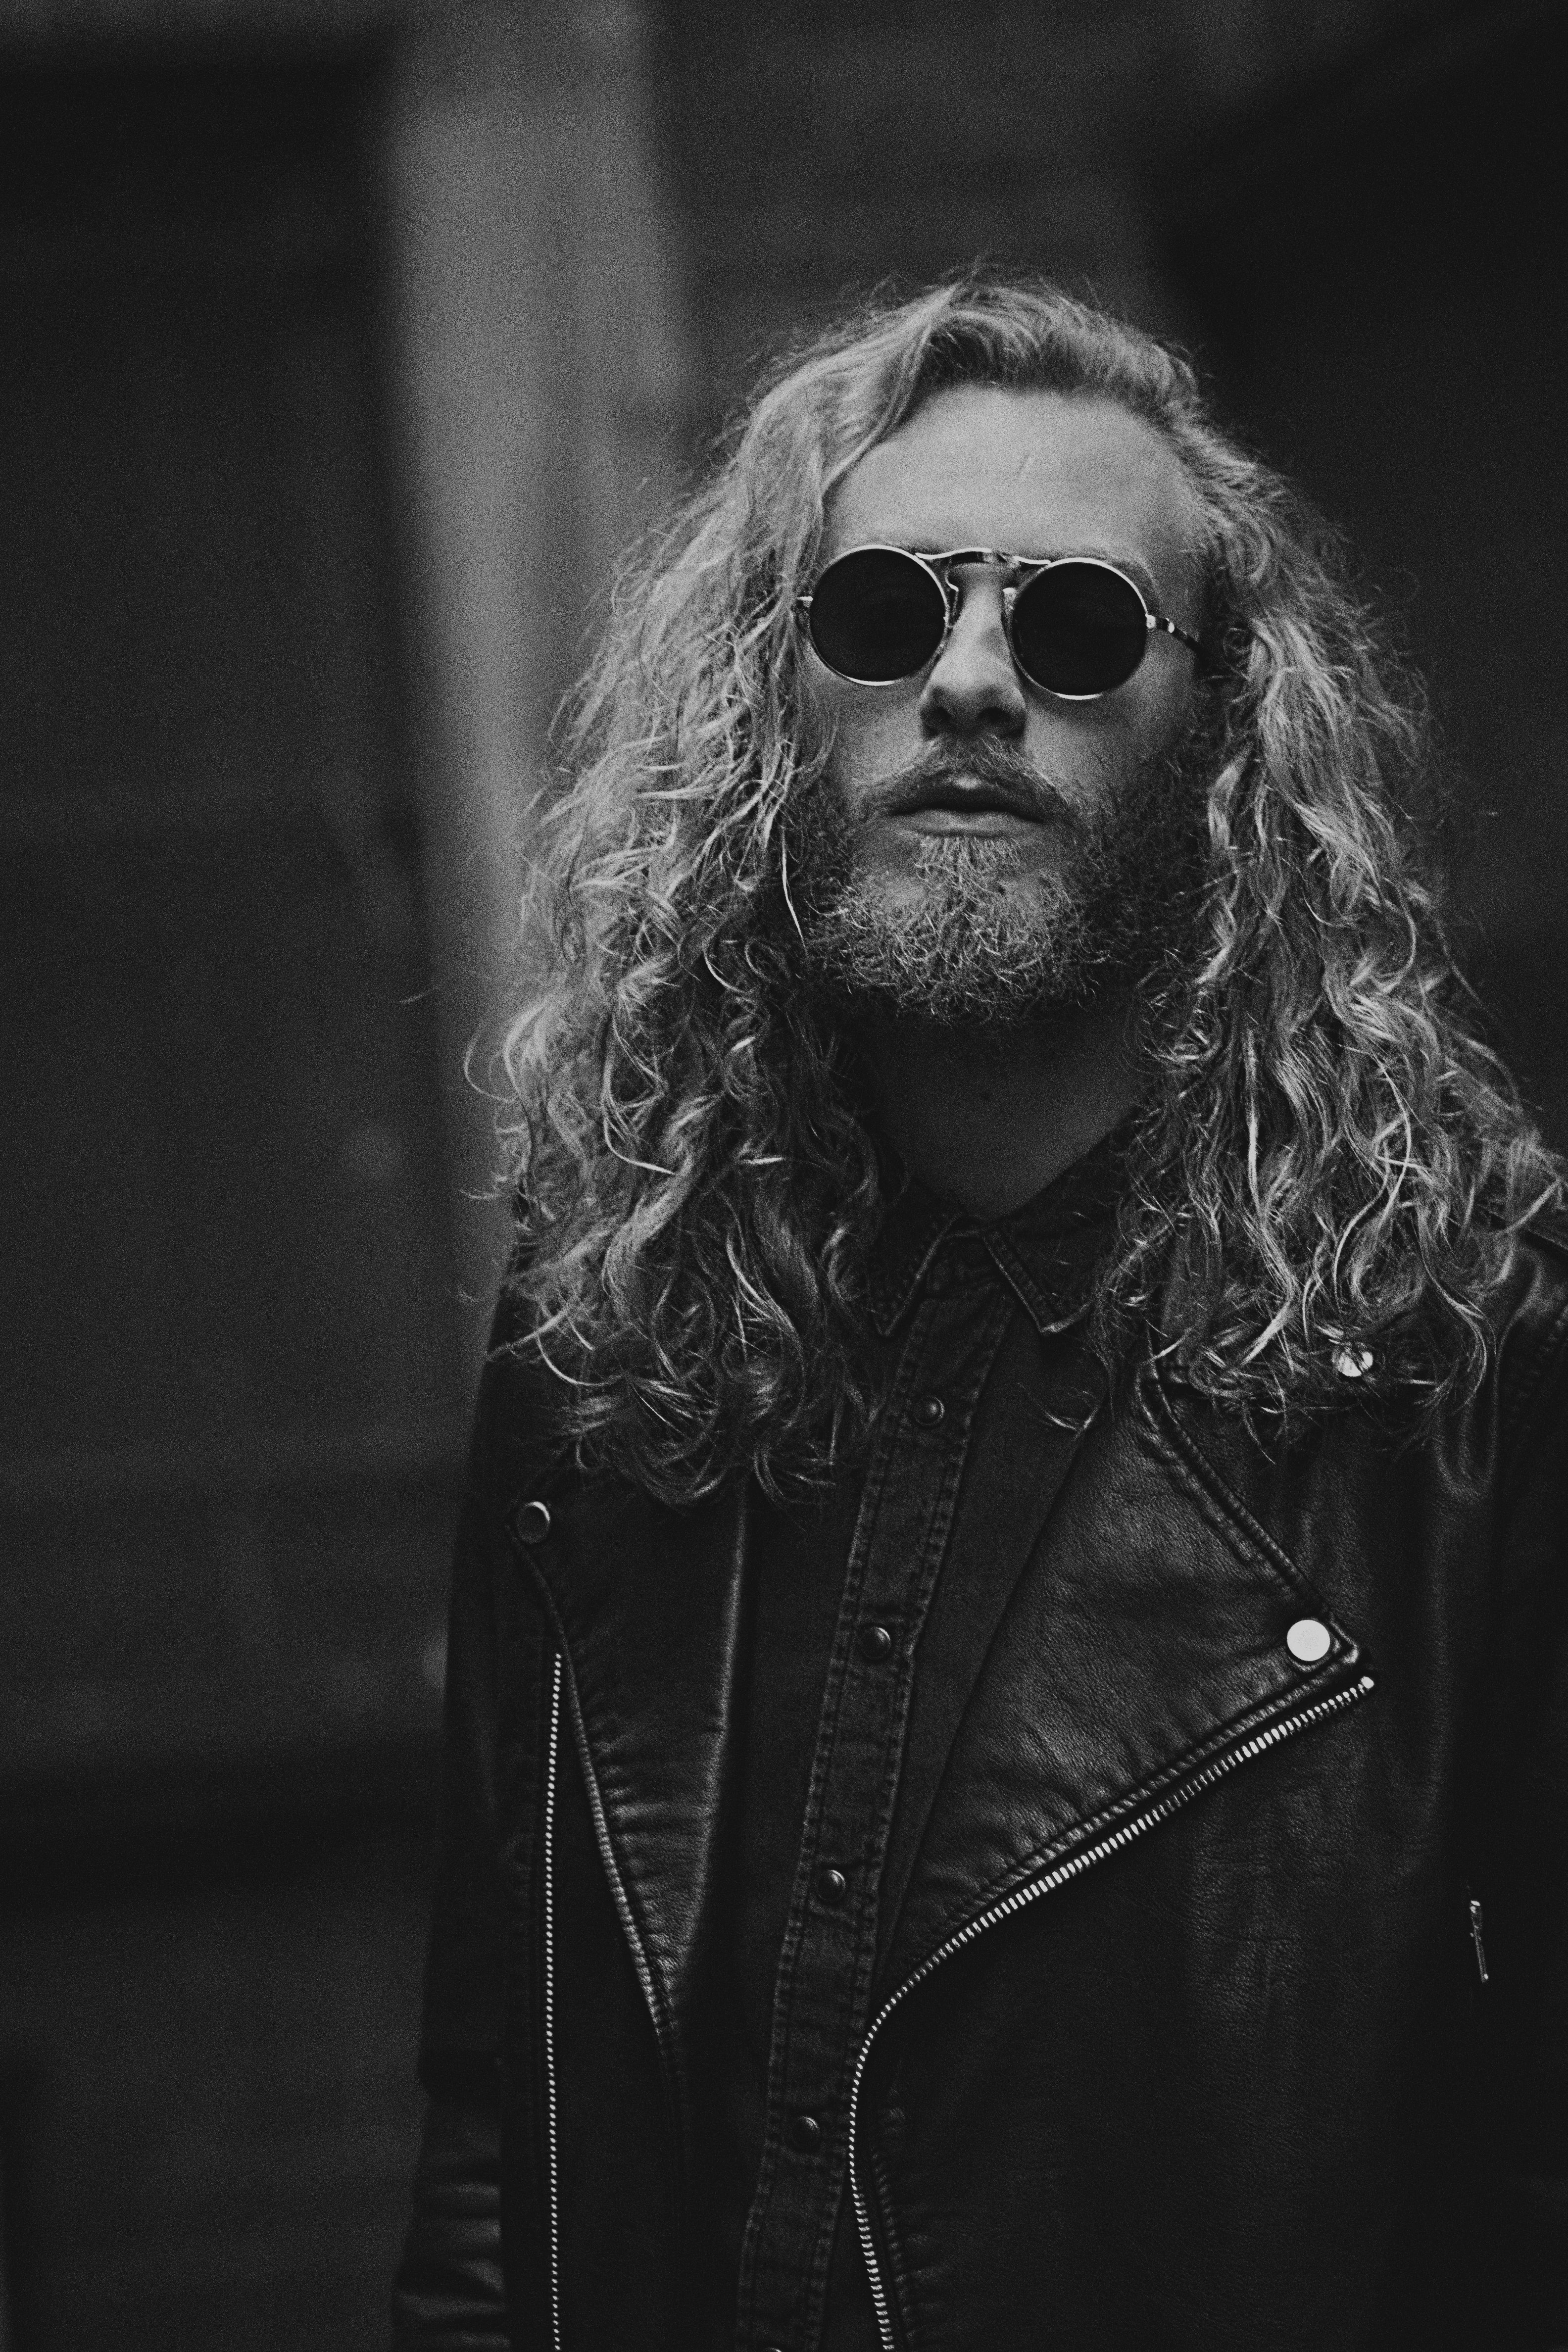 A man with long hair and beard wearing sunglasses and a leather jacket in black and white